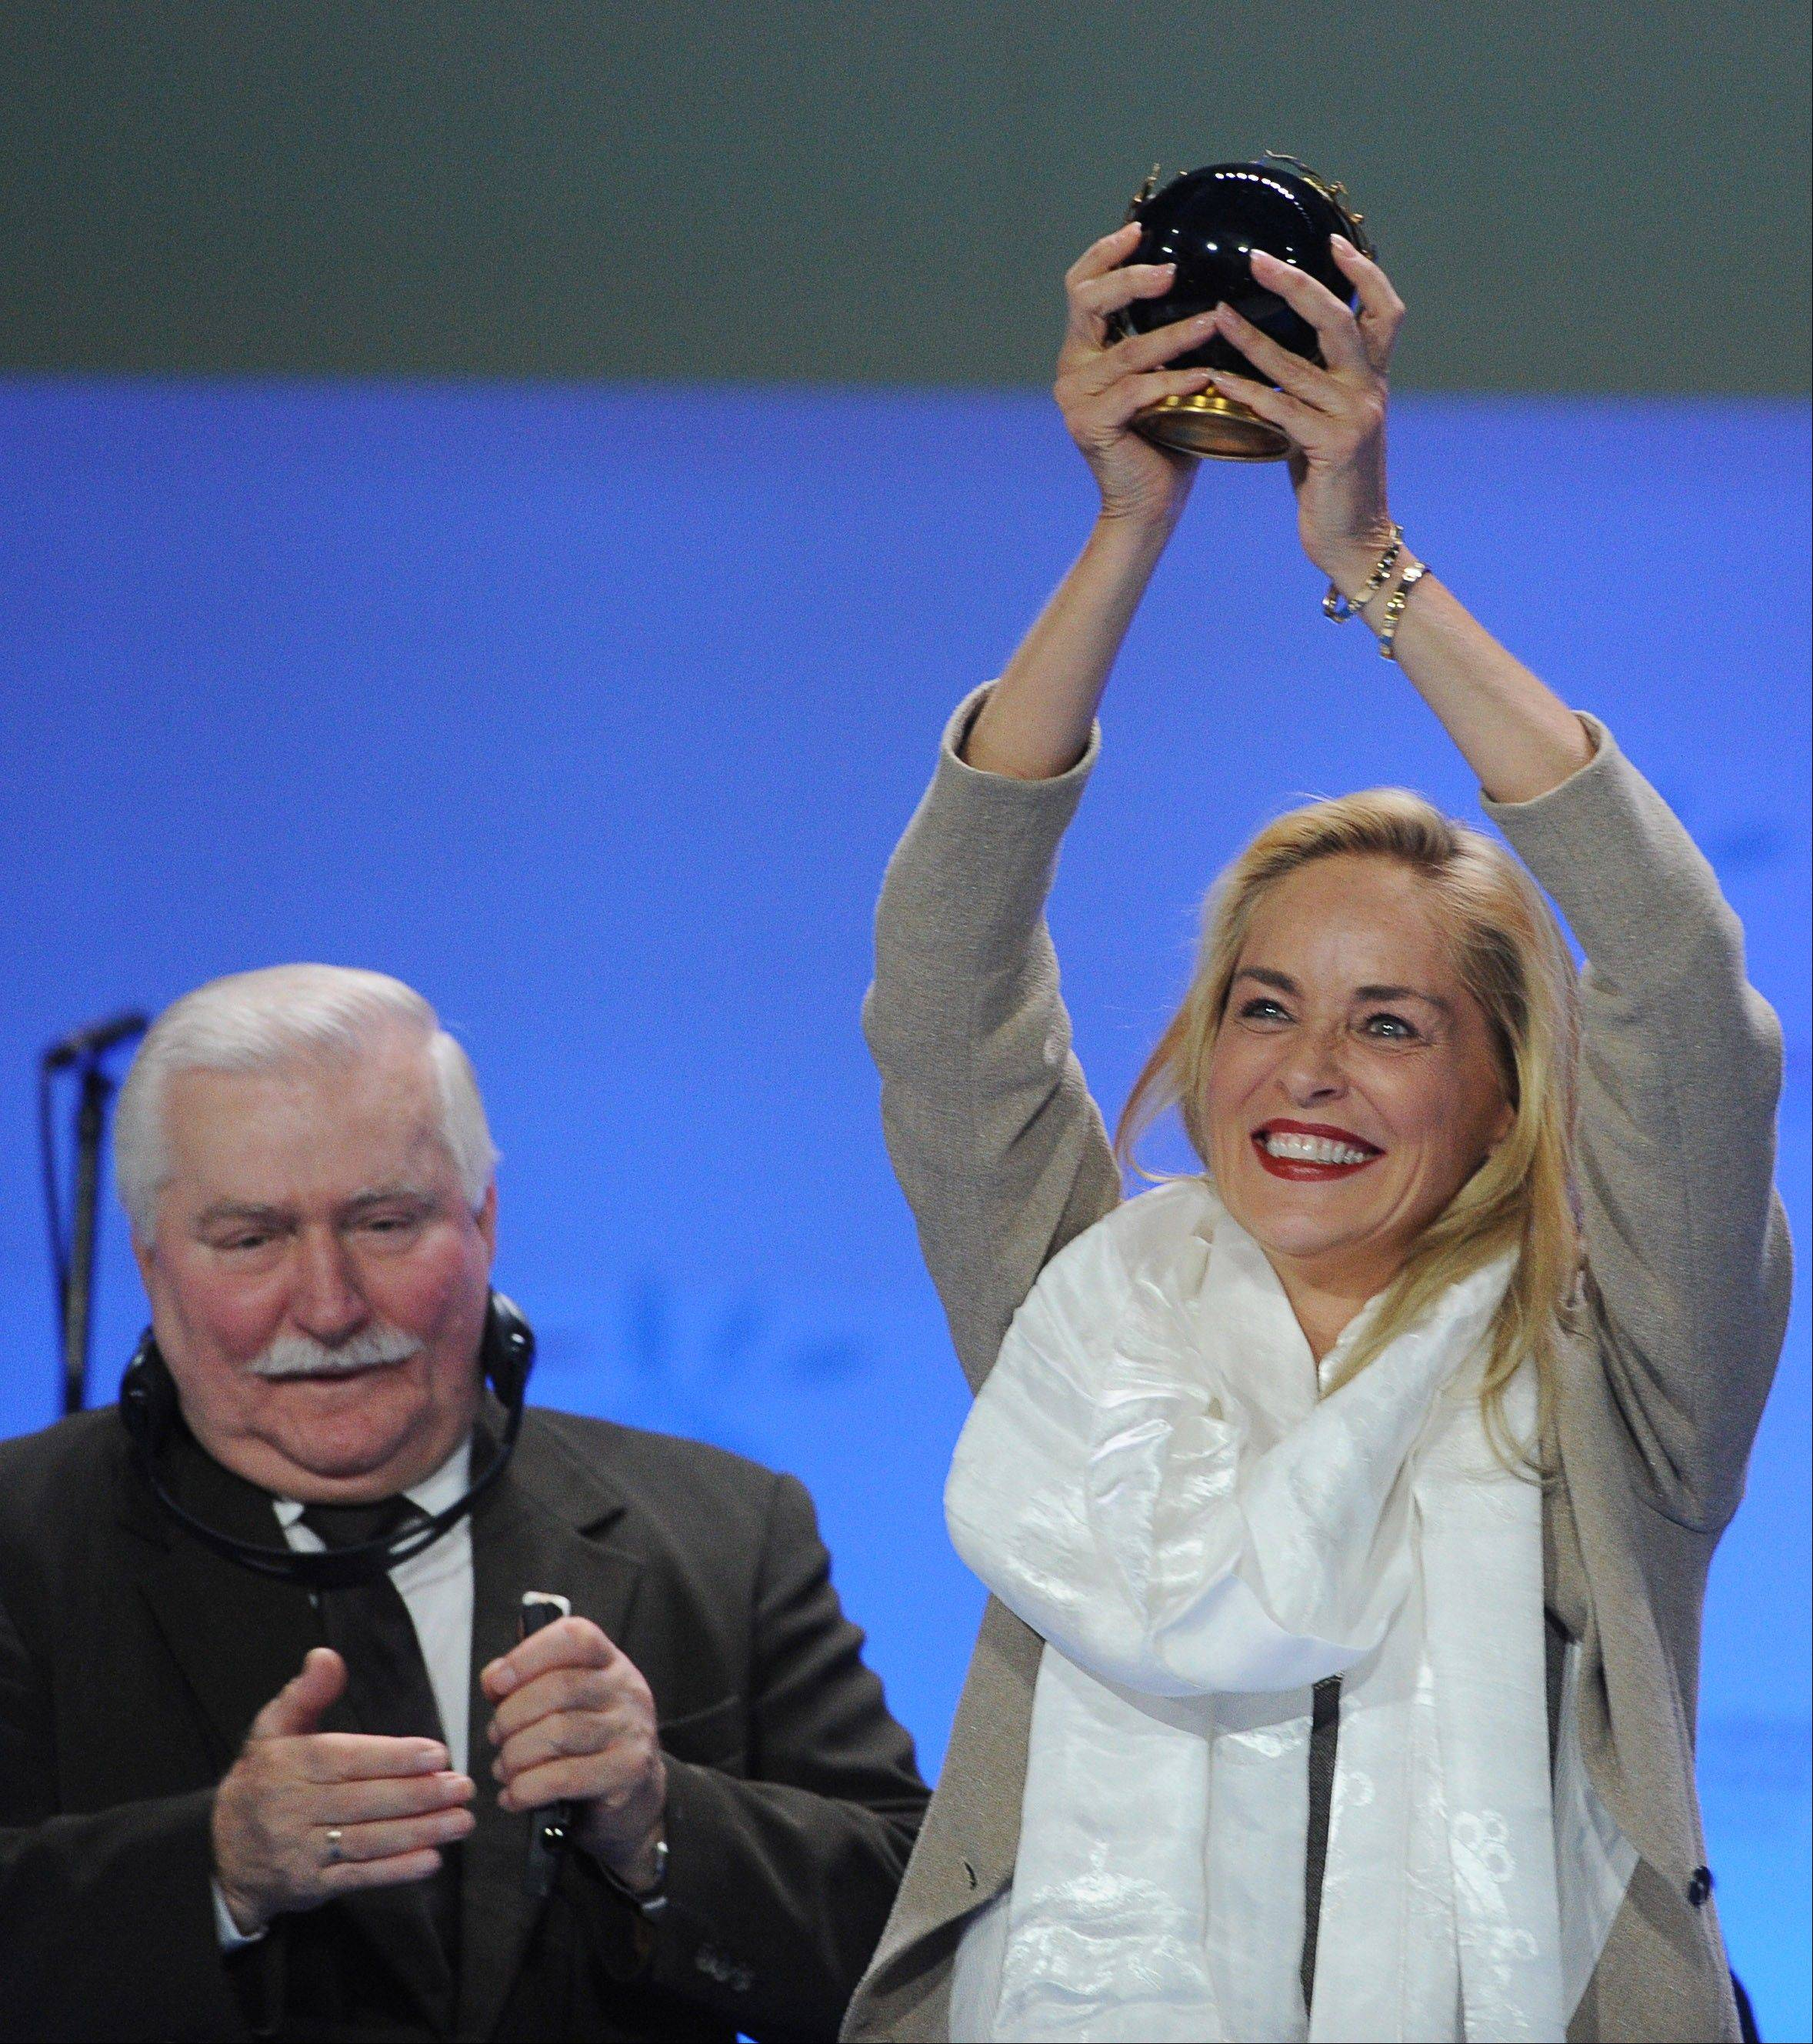 Actress Sharon Stone raises the Summit�s Peace Prize she just received Wednesday from Nobel Peace laureates, as former Polish President Lech Walesa applauds during the award receiving ceremony in Warsaw, Poland. Stone was awarded with the prize in recognition of her activities against HIV and AIDS.